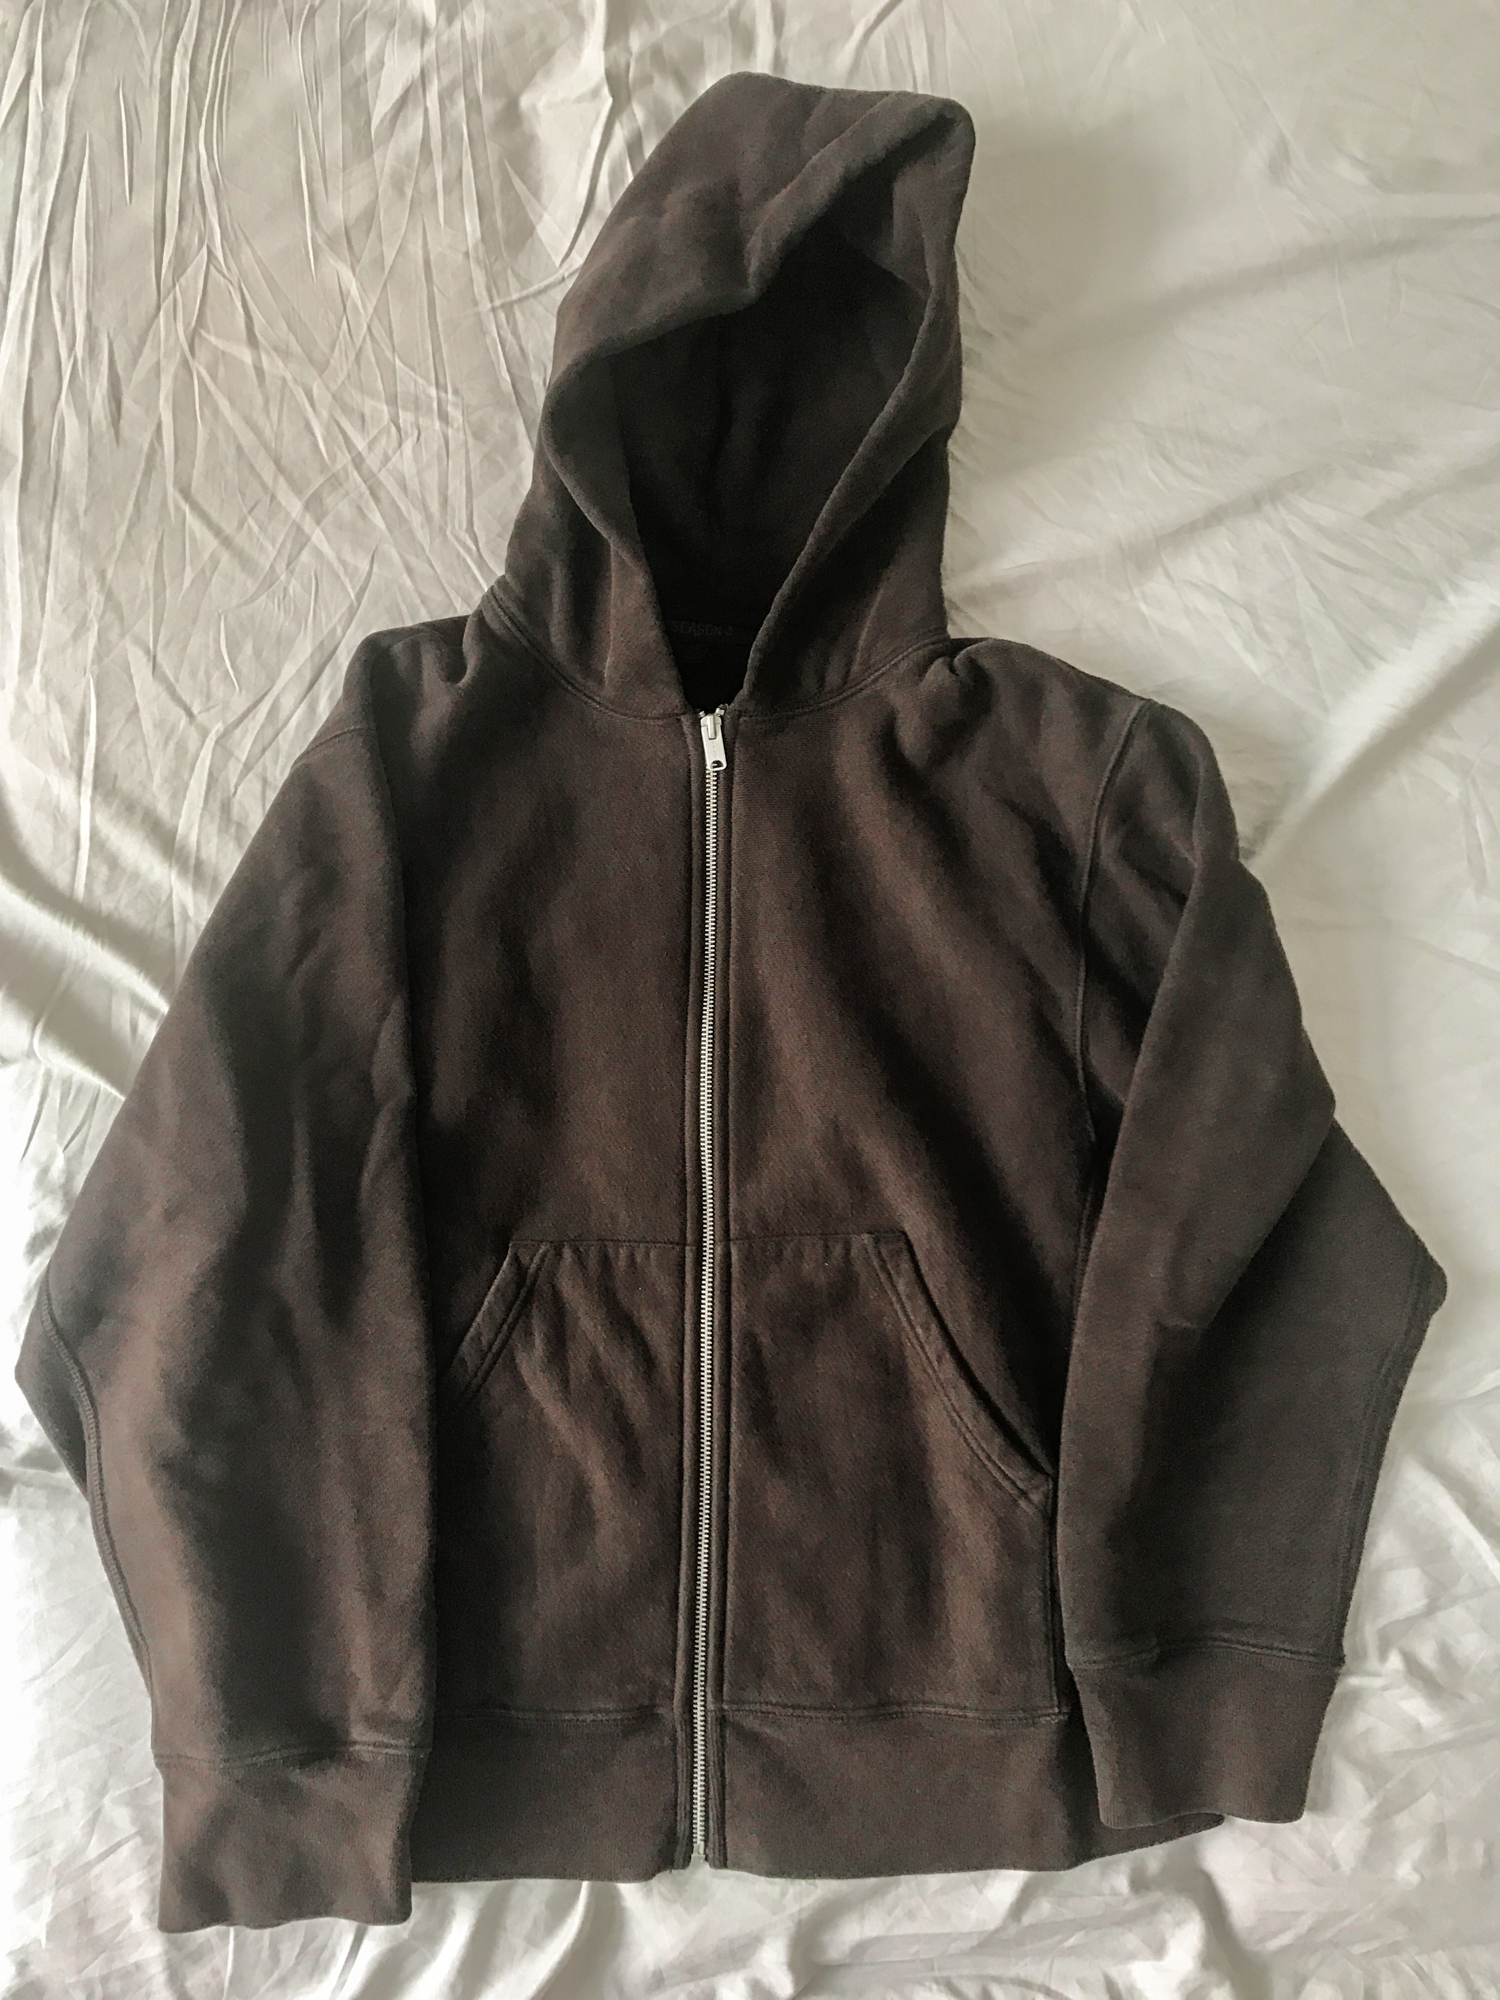 Yeezy Season 3 dk. brown zip up hoodie Oversized boxy fit size S